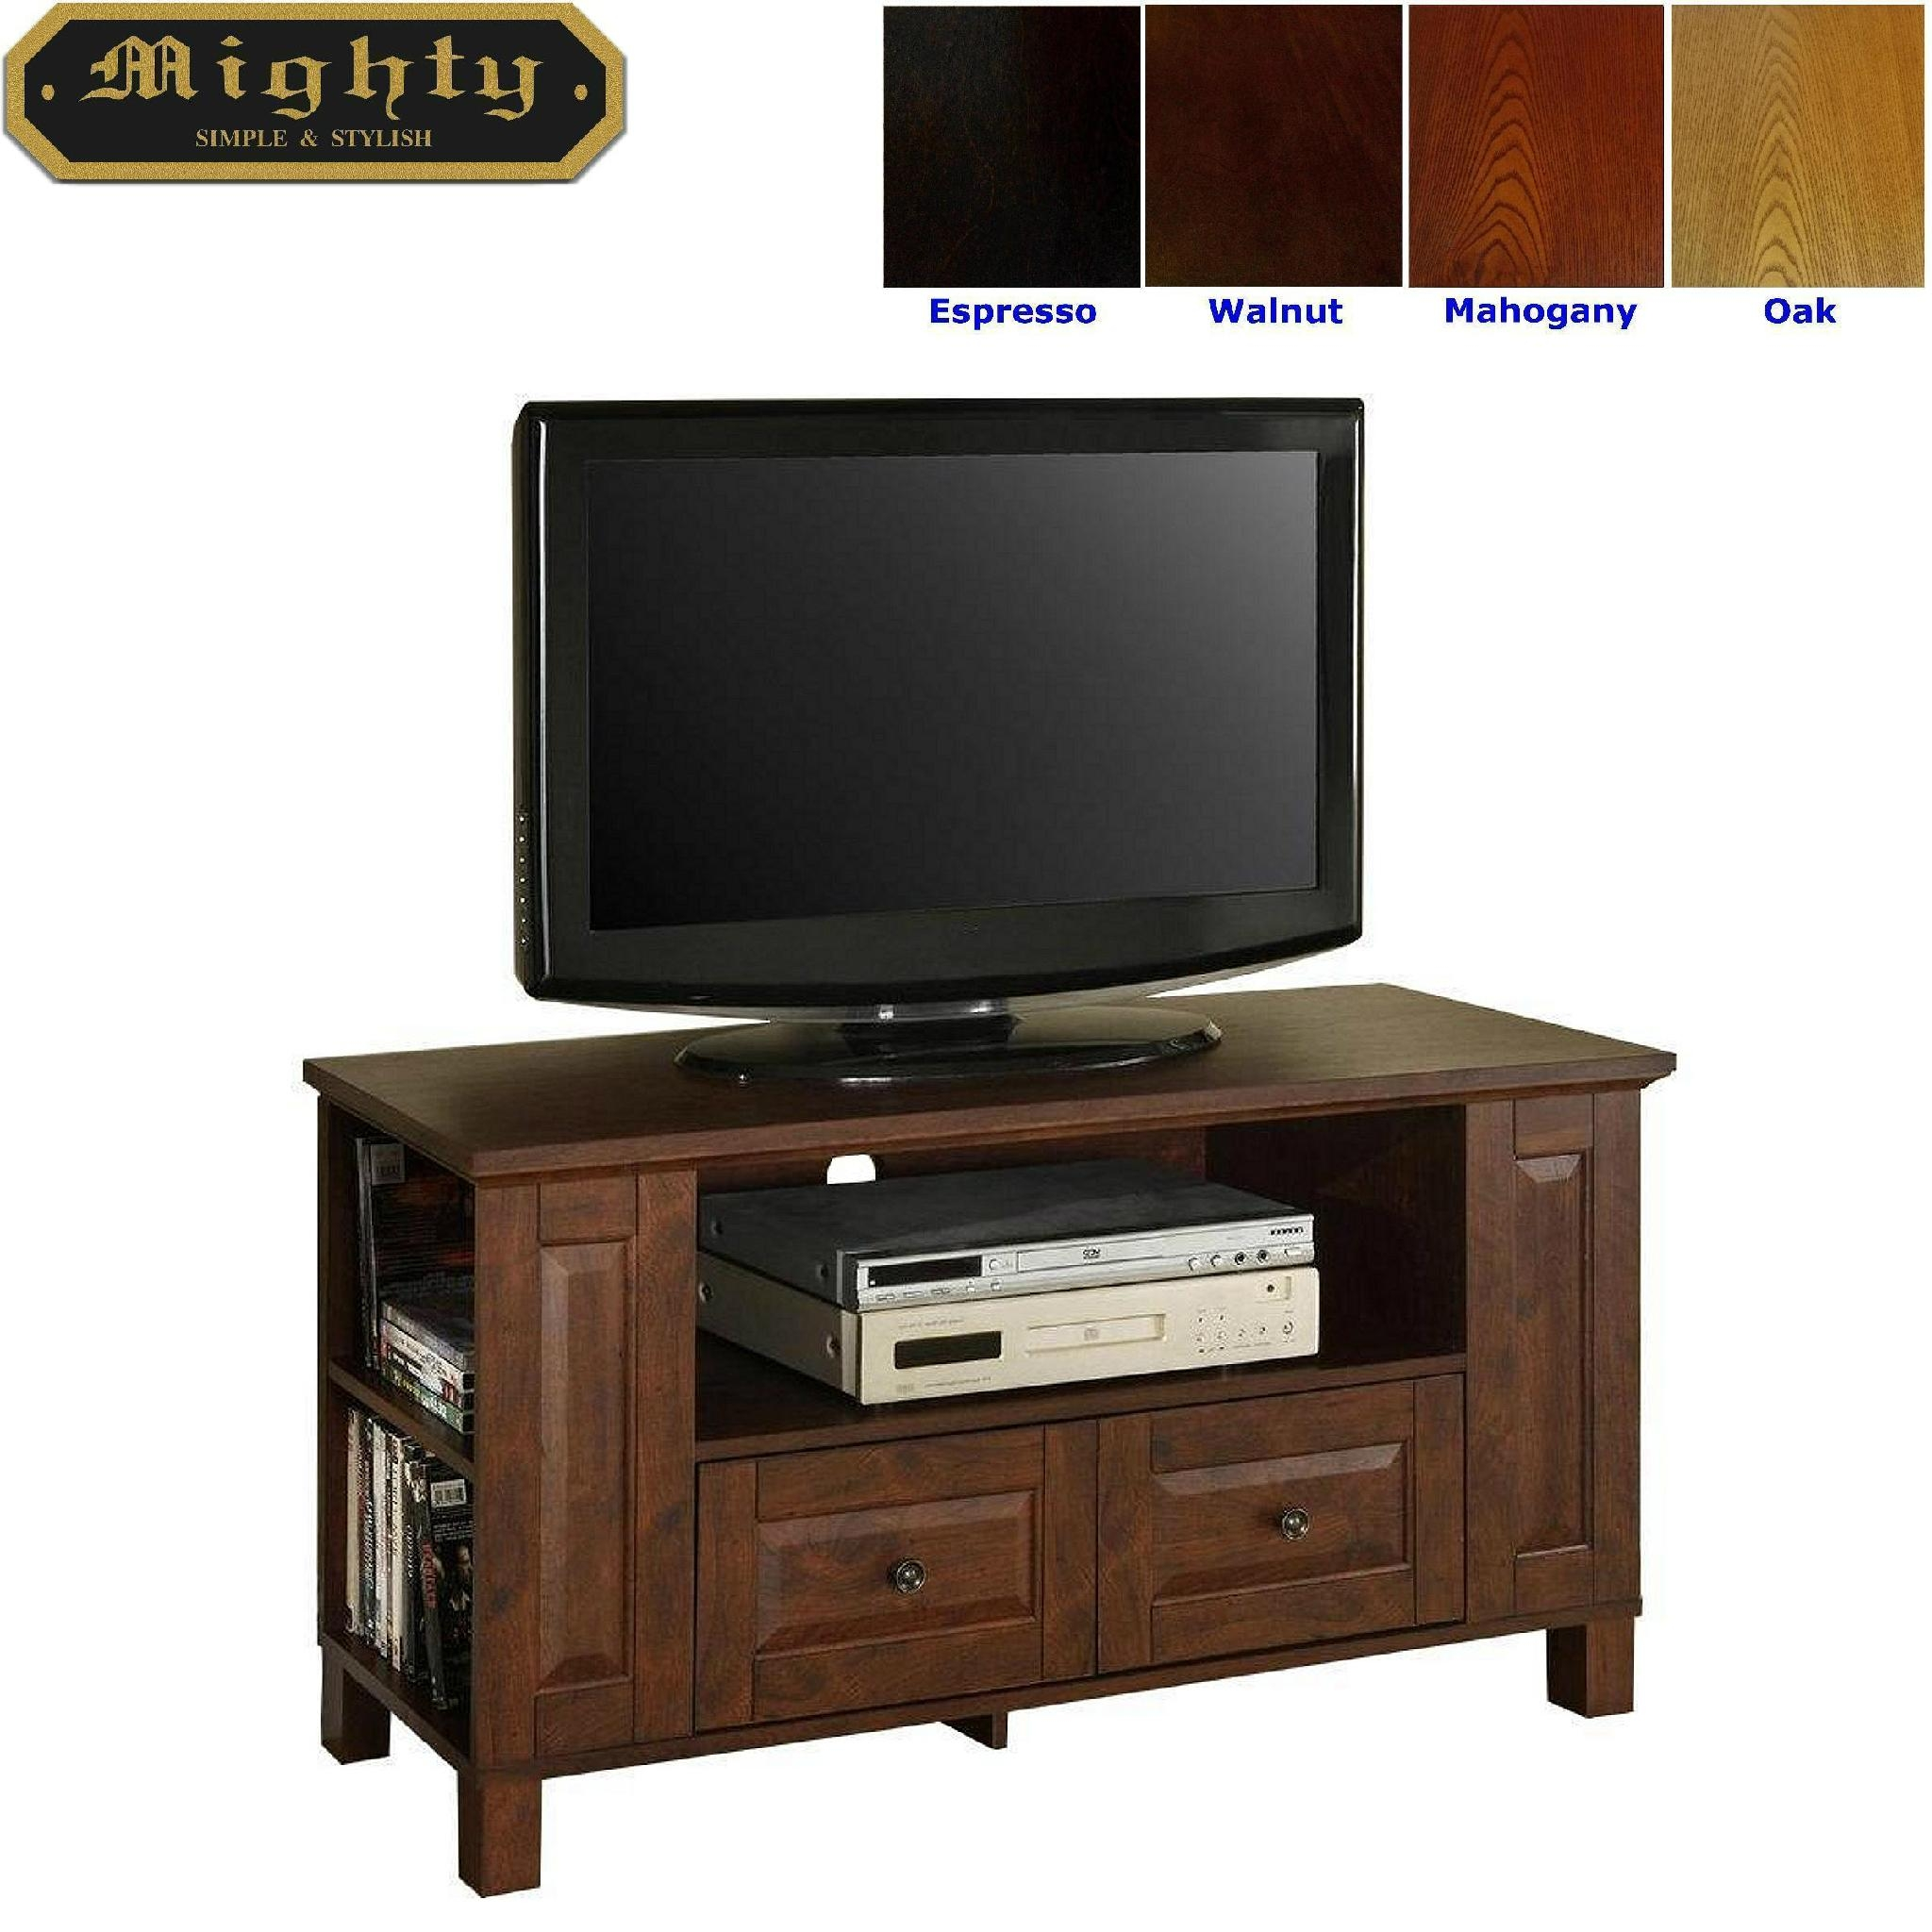 Small Tv Stand For Bedroom 44 Inch Small Mahogany Tv Storage Cabinet Bedroom Tv Stand Wd